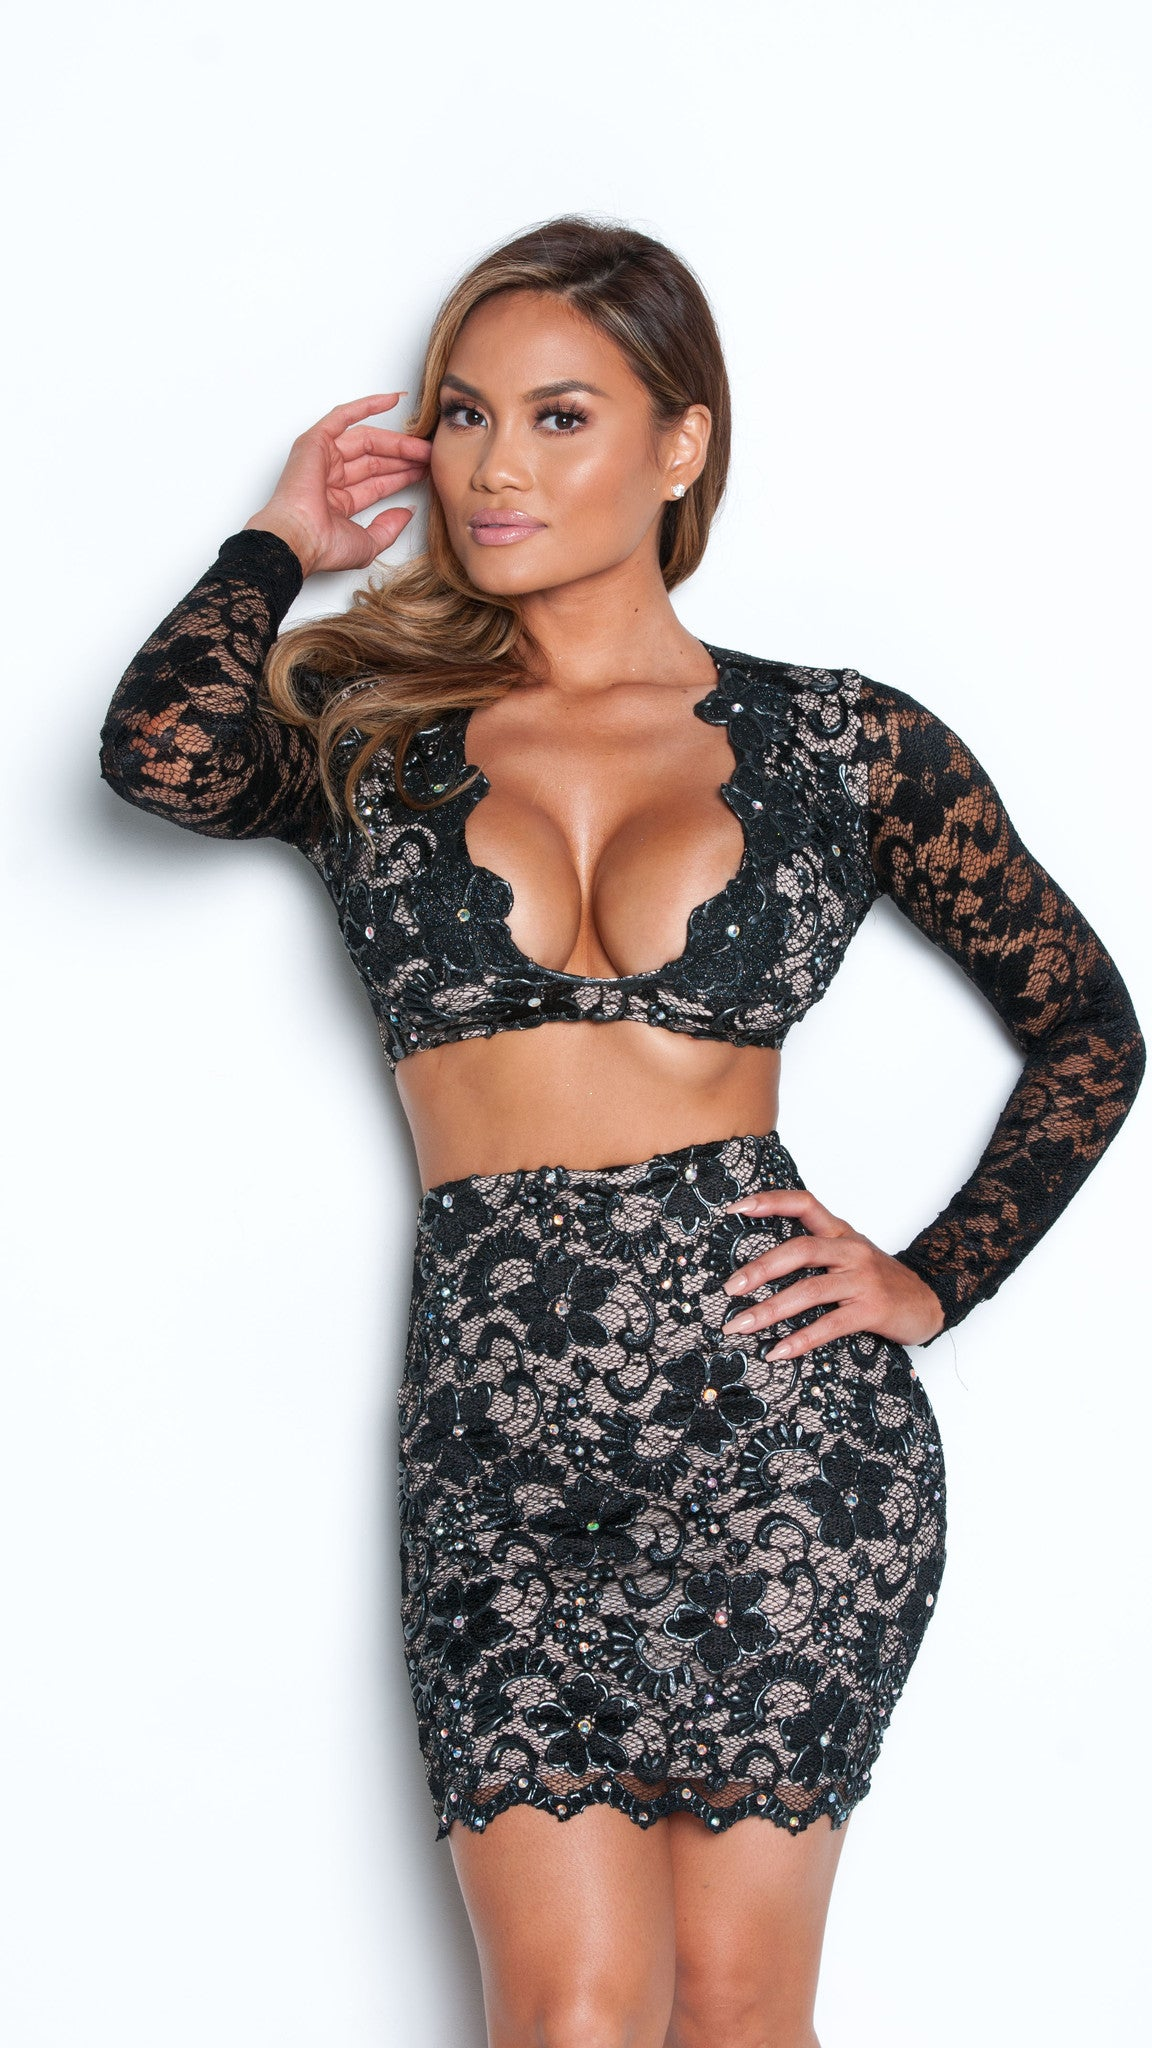 MELI TWO PIECE DRESS LACE SET IN BLACK